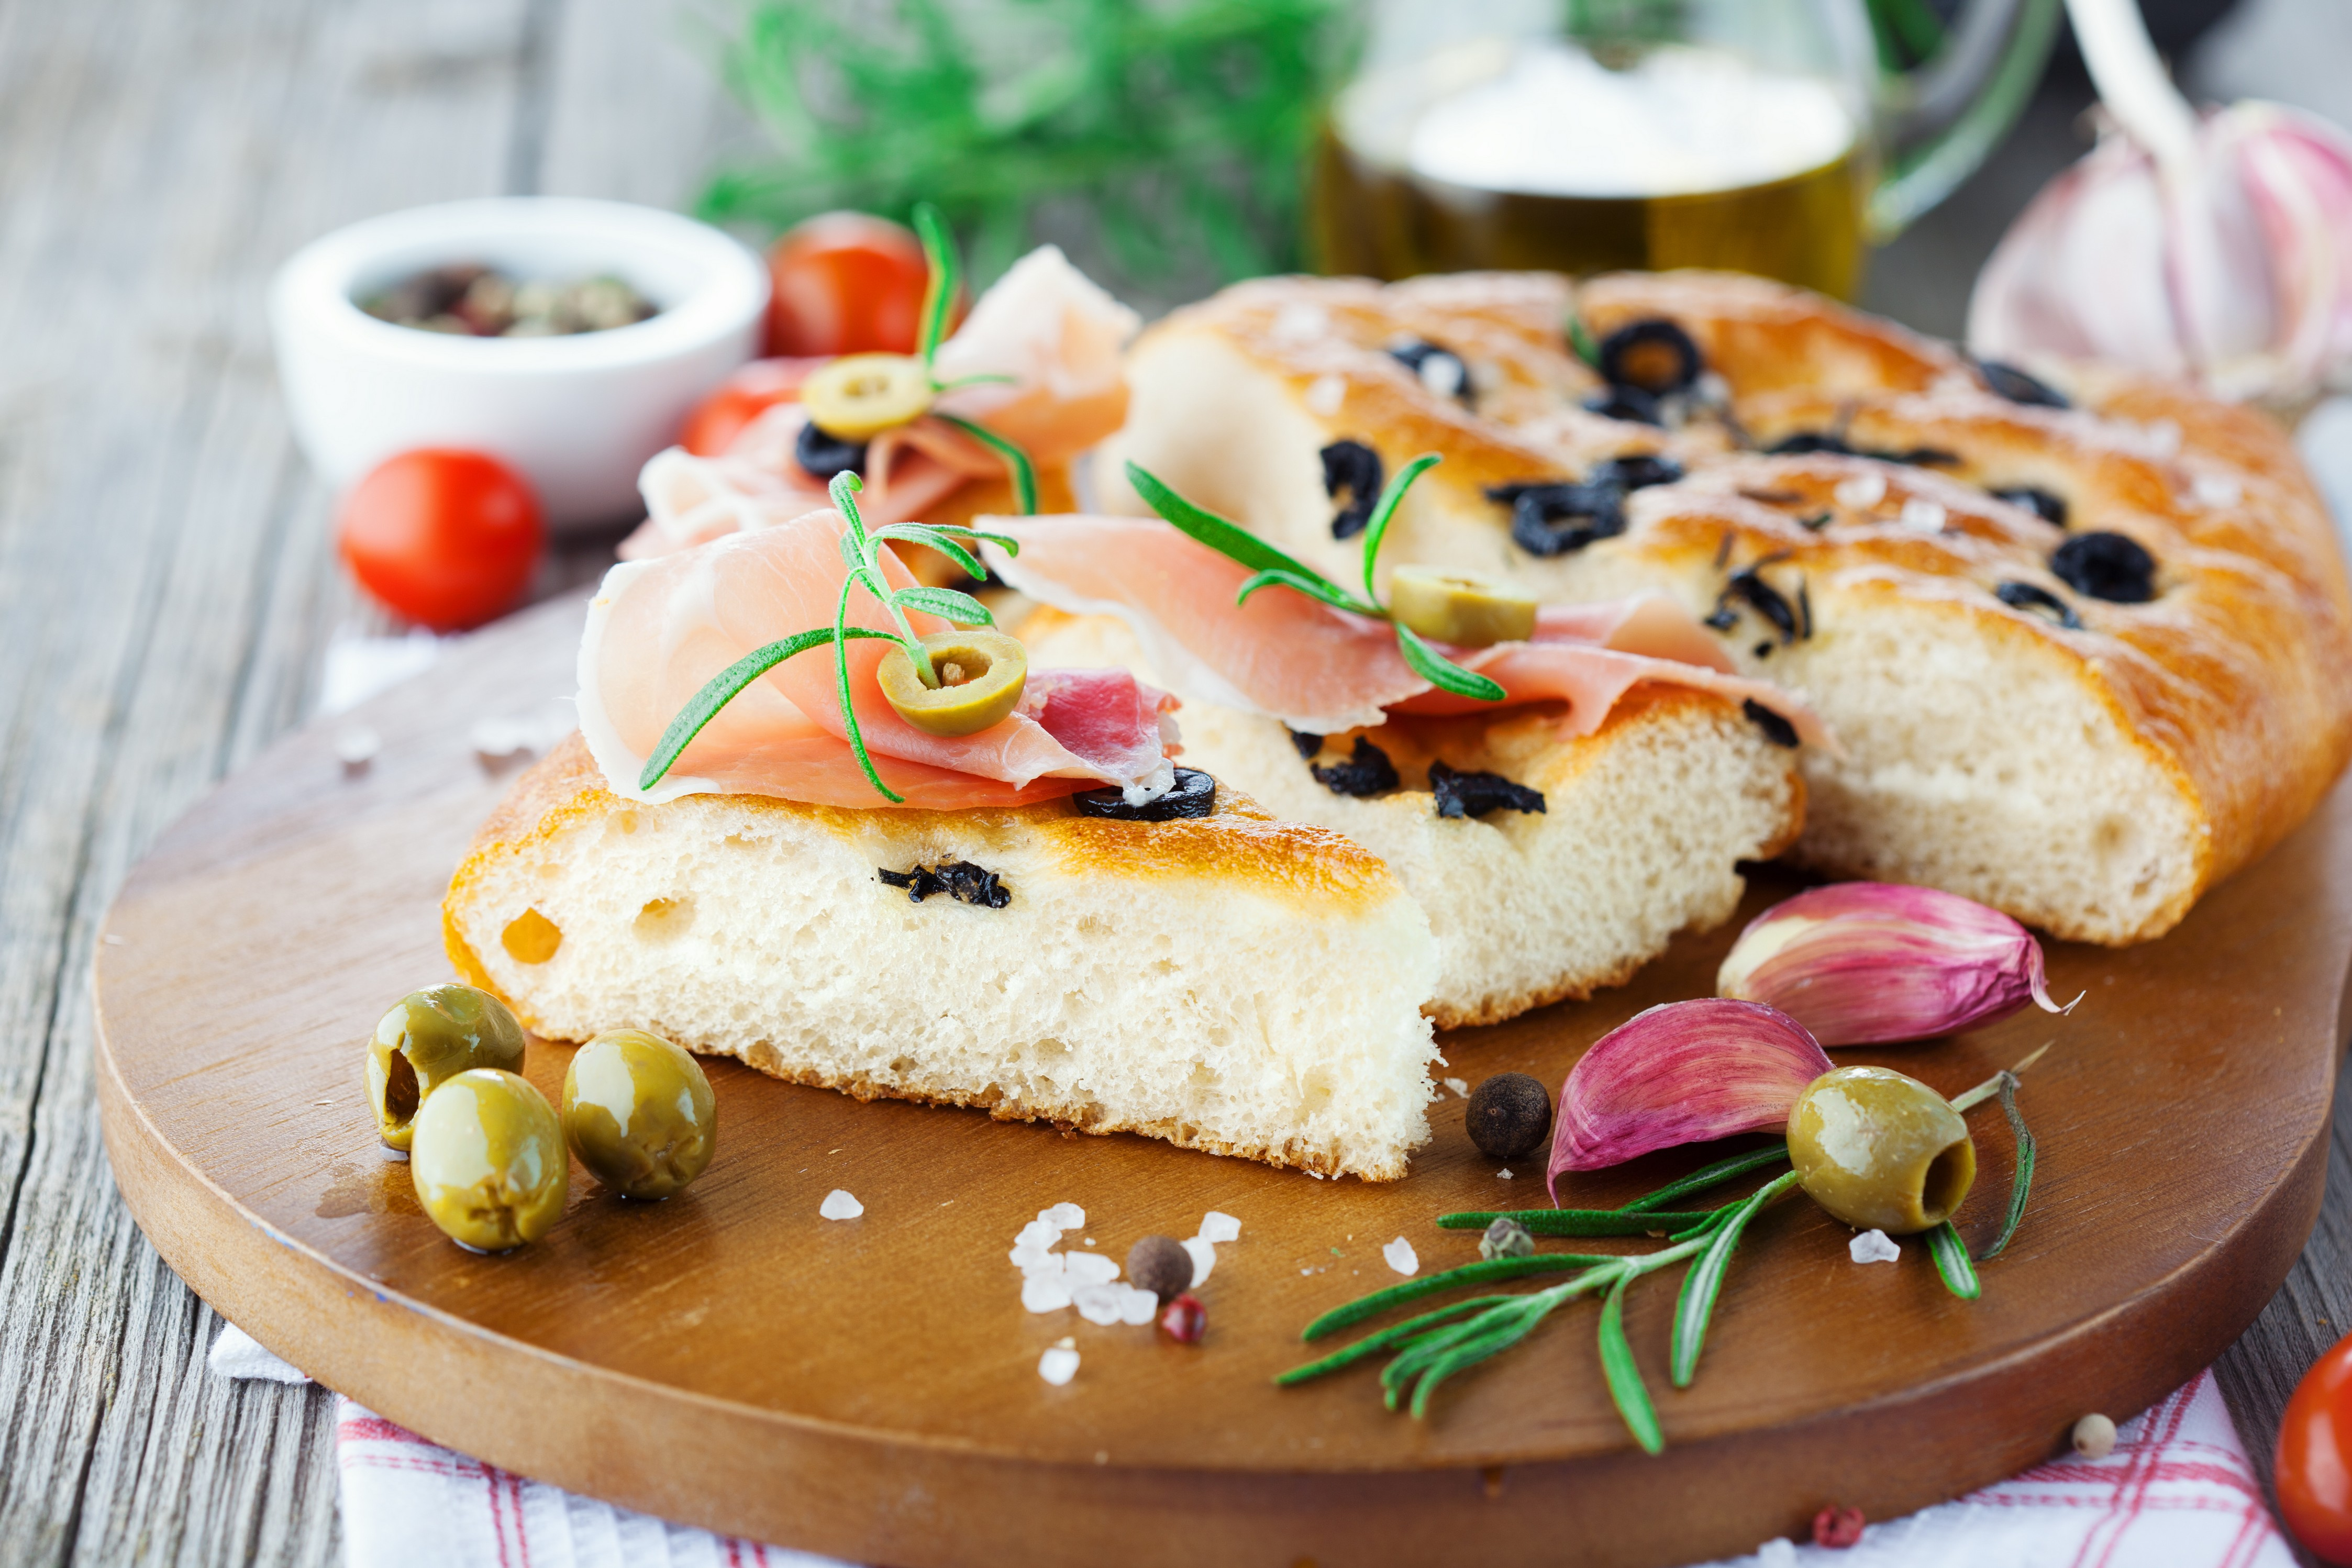 Freshly baked traditional Italian focaccia bread with rosemary, prosciutto ham and black olives on old wooden background, selective focus